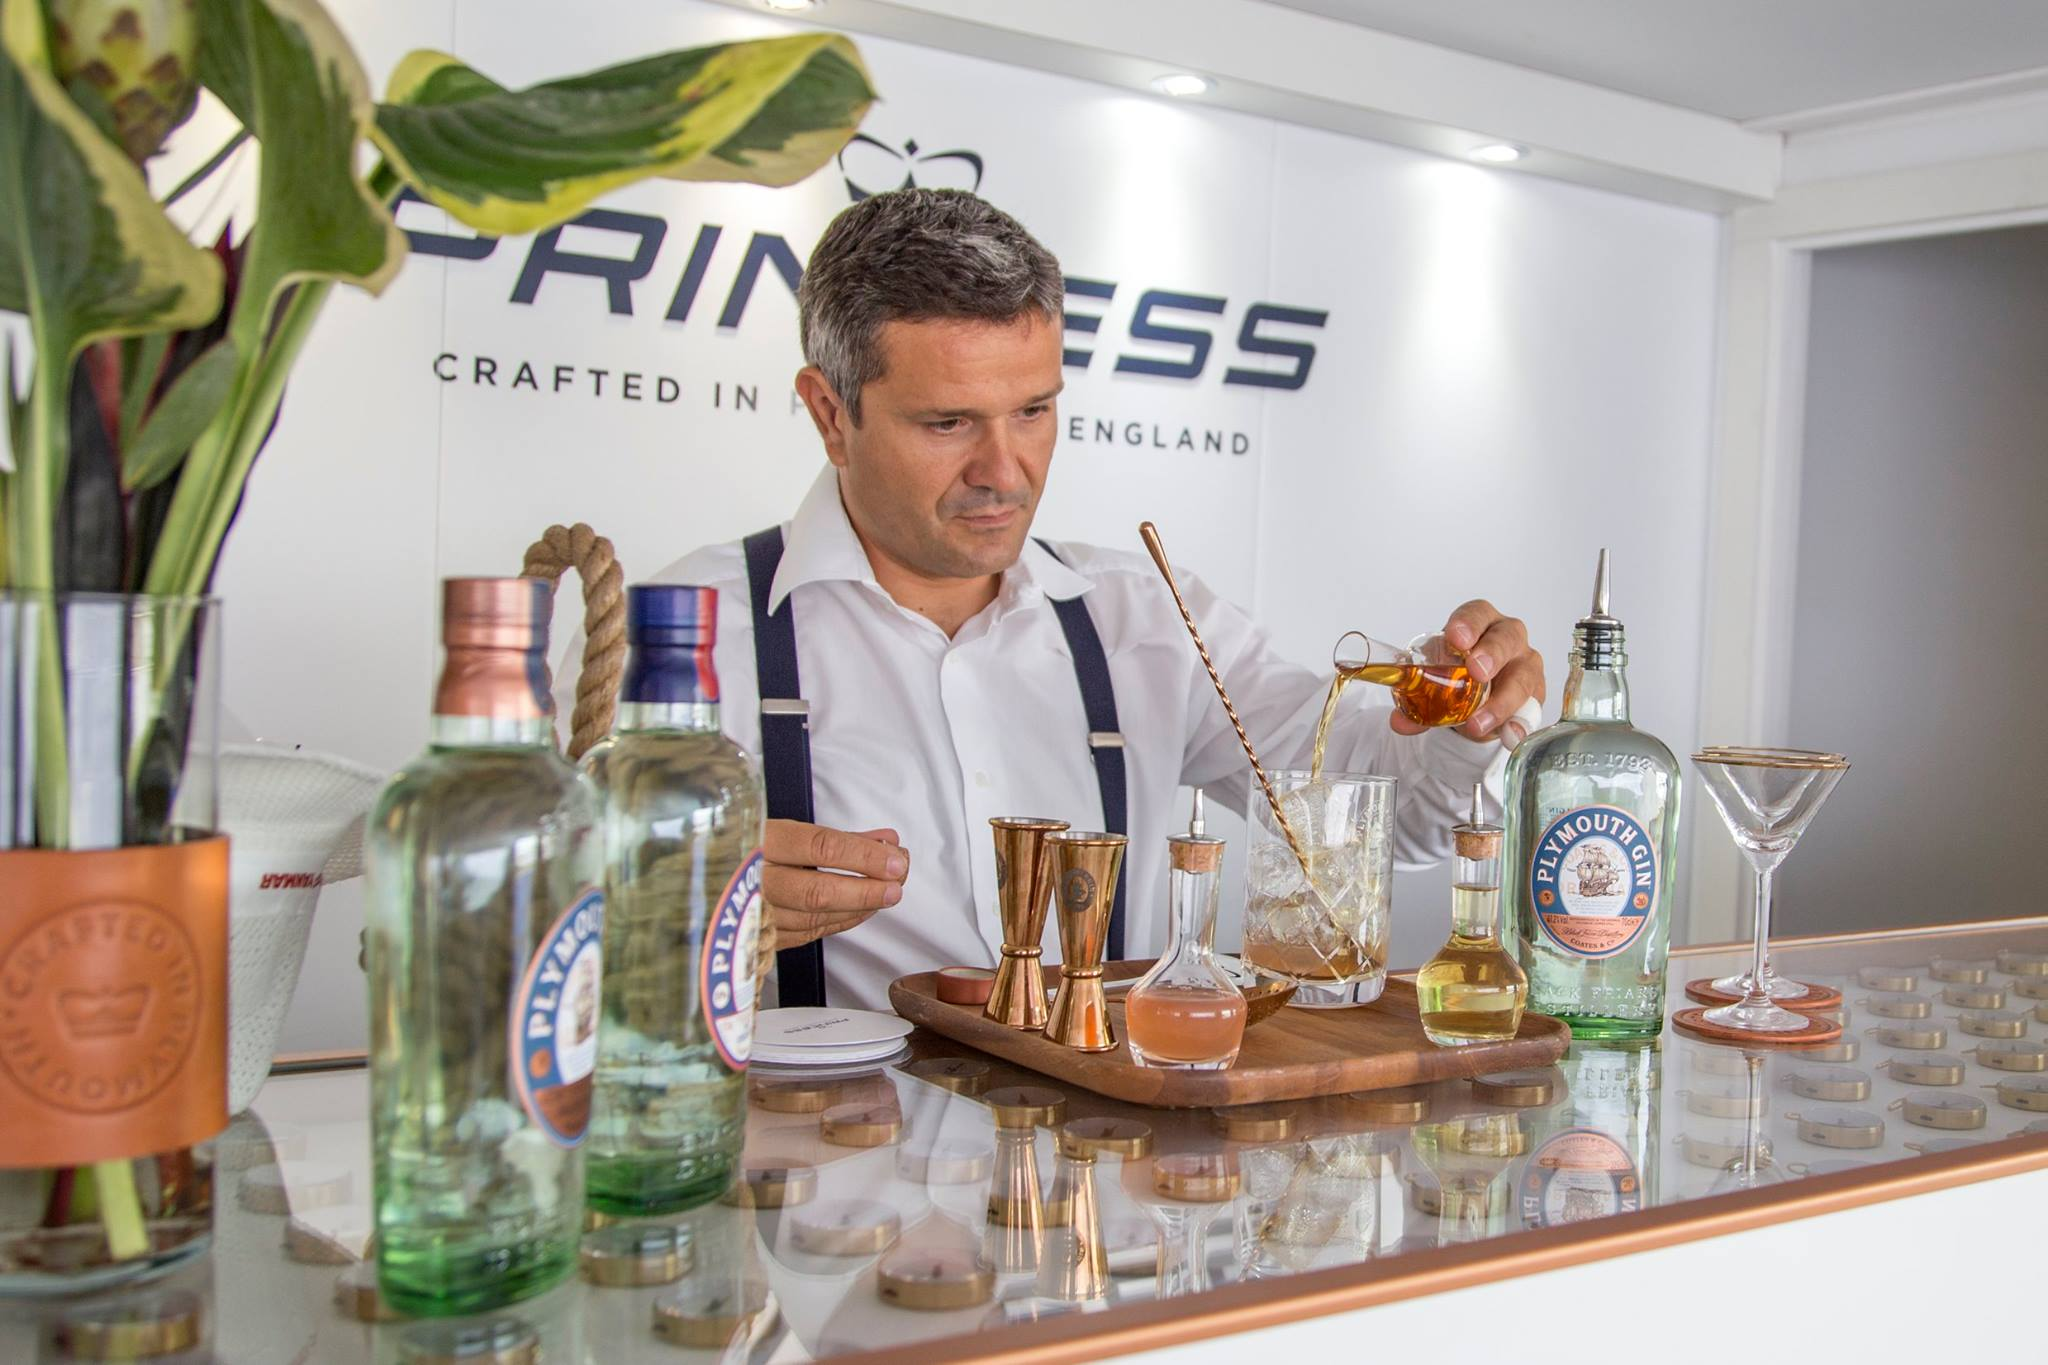 BRITISH HERITAGE BRANDS COLLABORATE: PLYMOUTH GIN & PRINCESS YACHTS